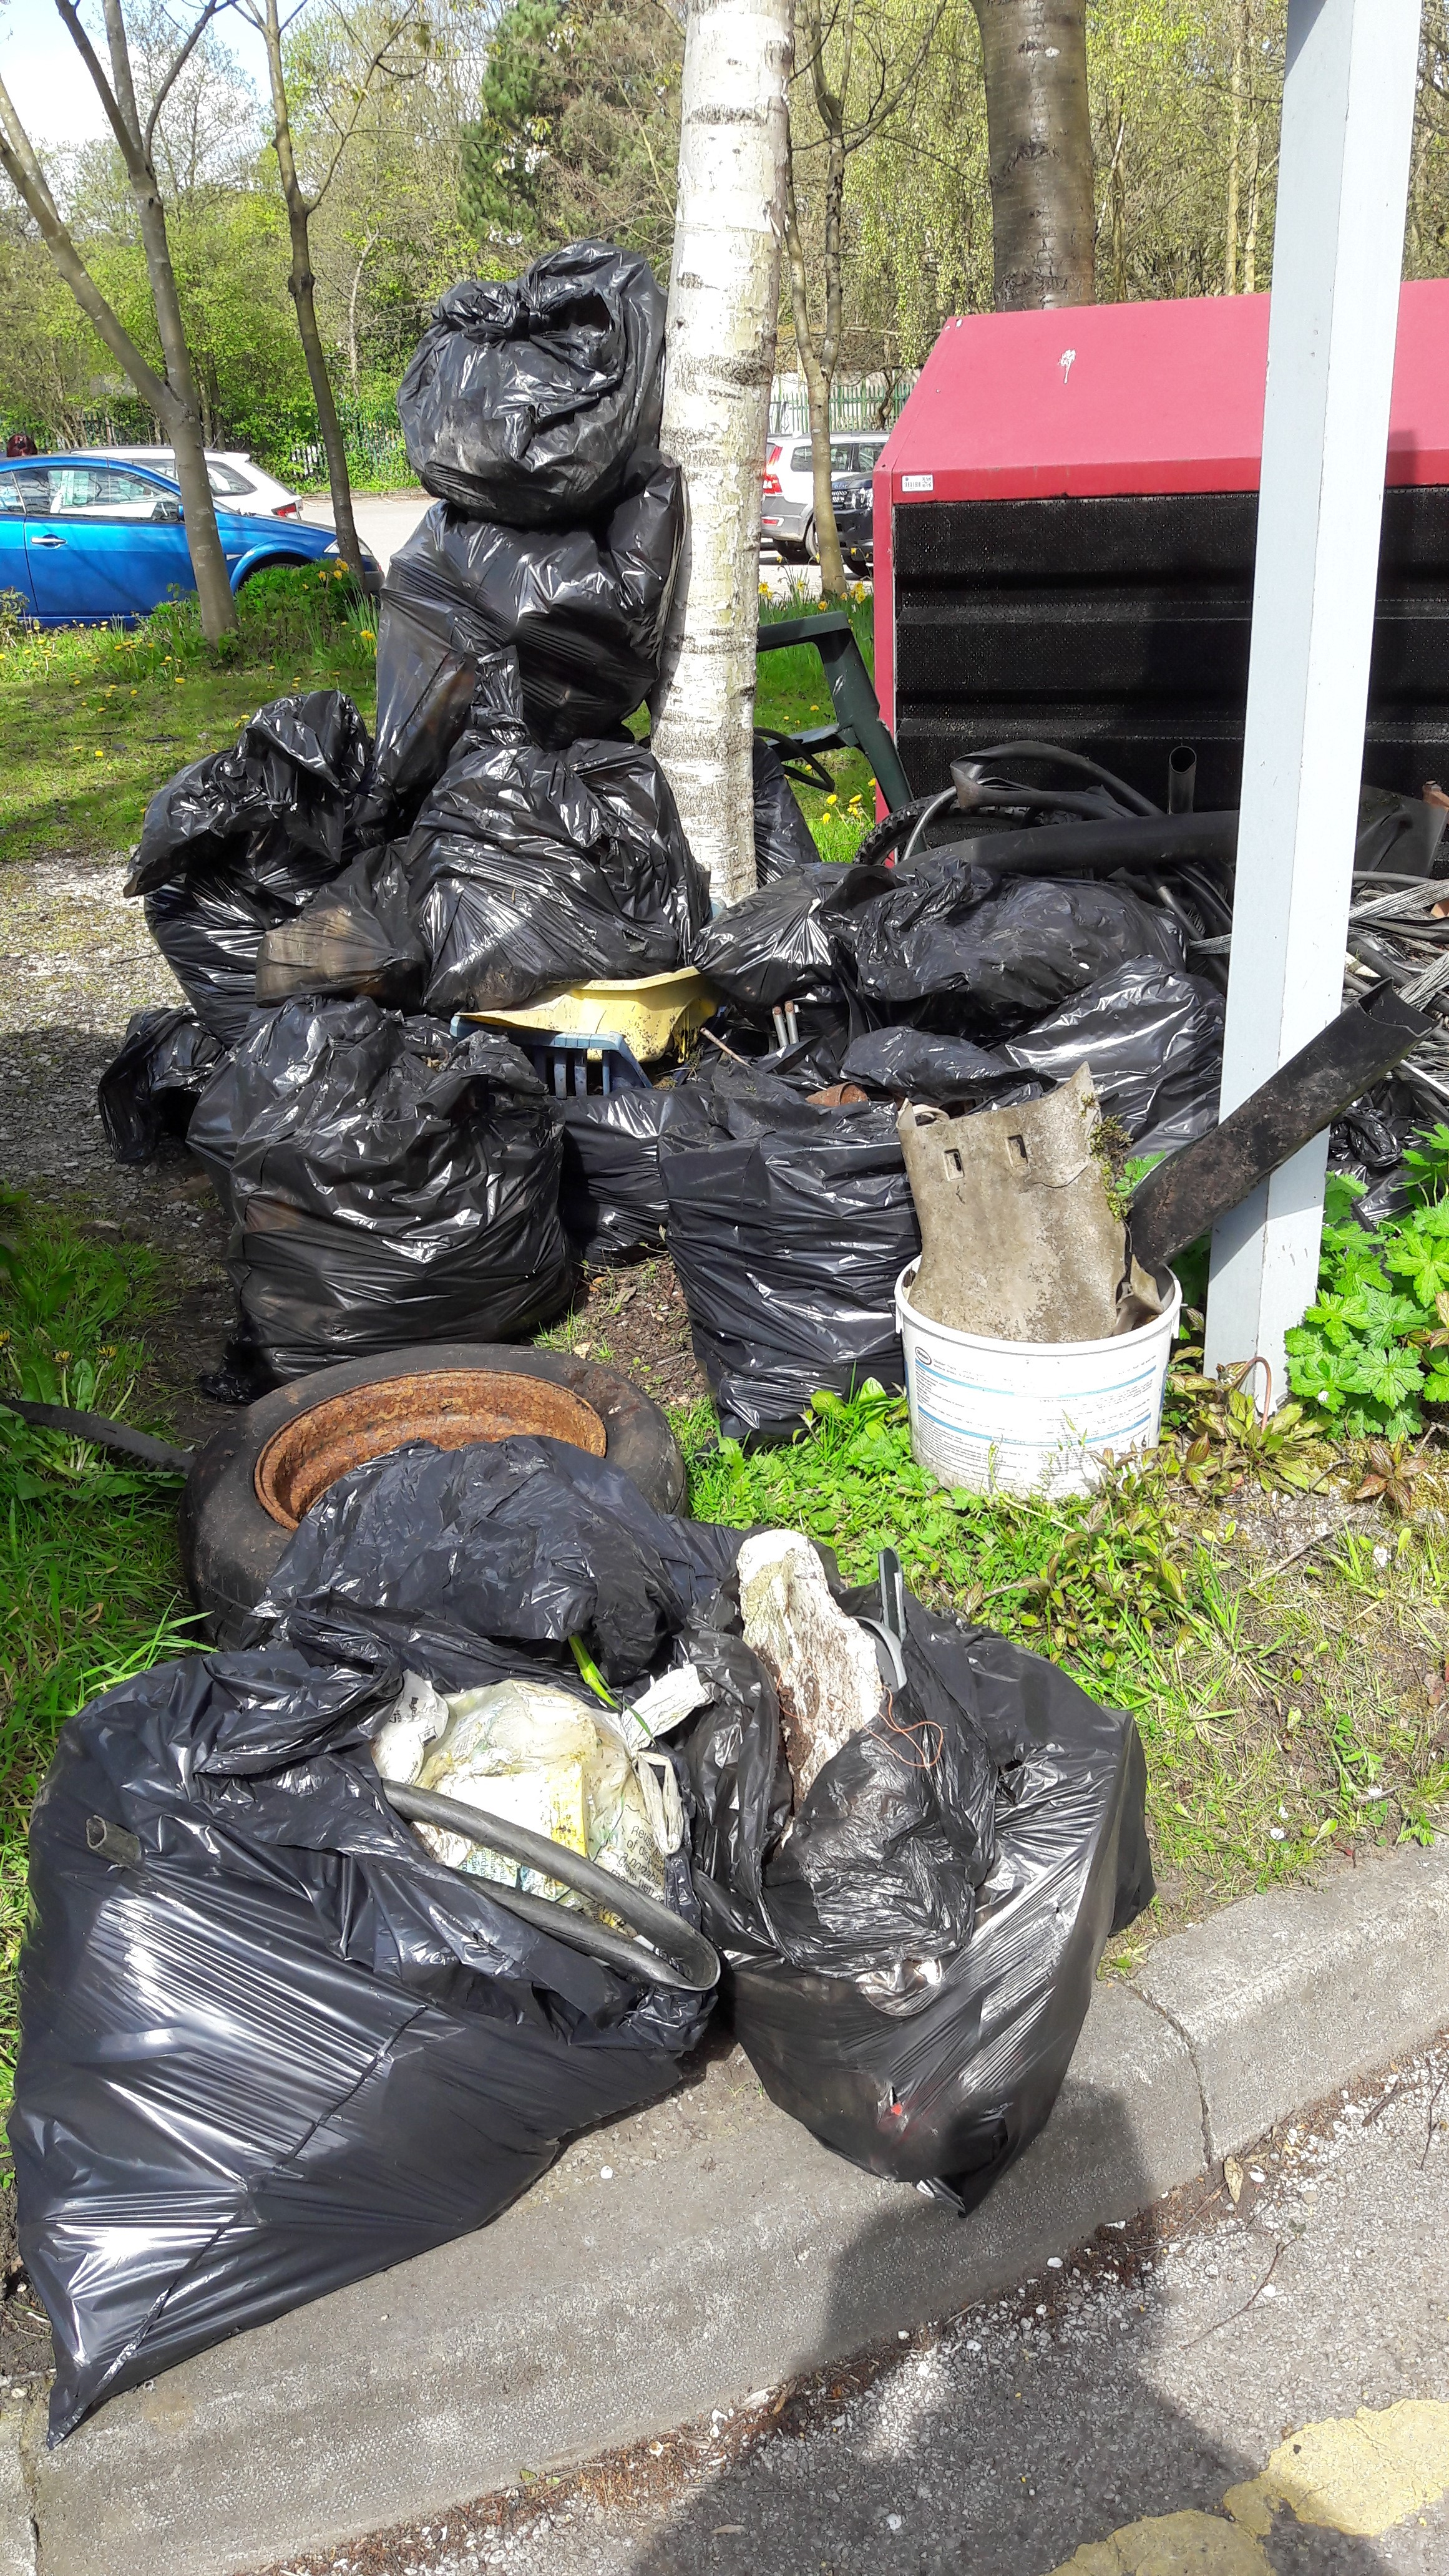 The bags of rubbish collected